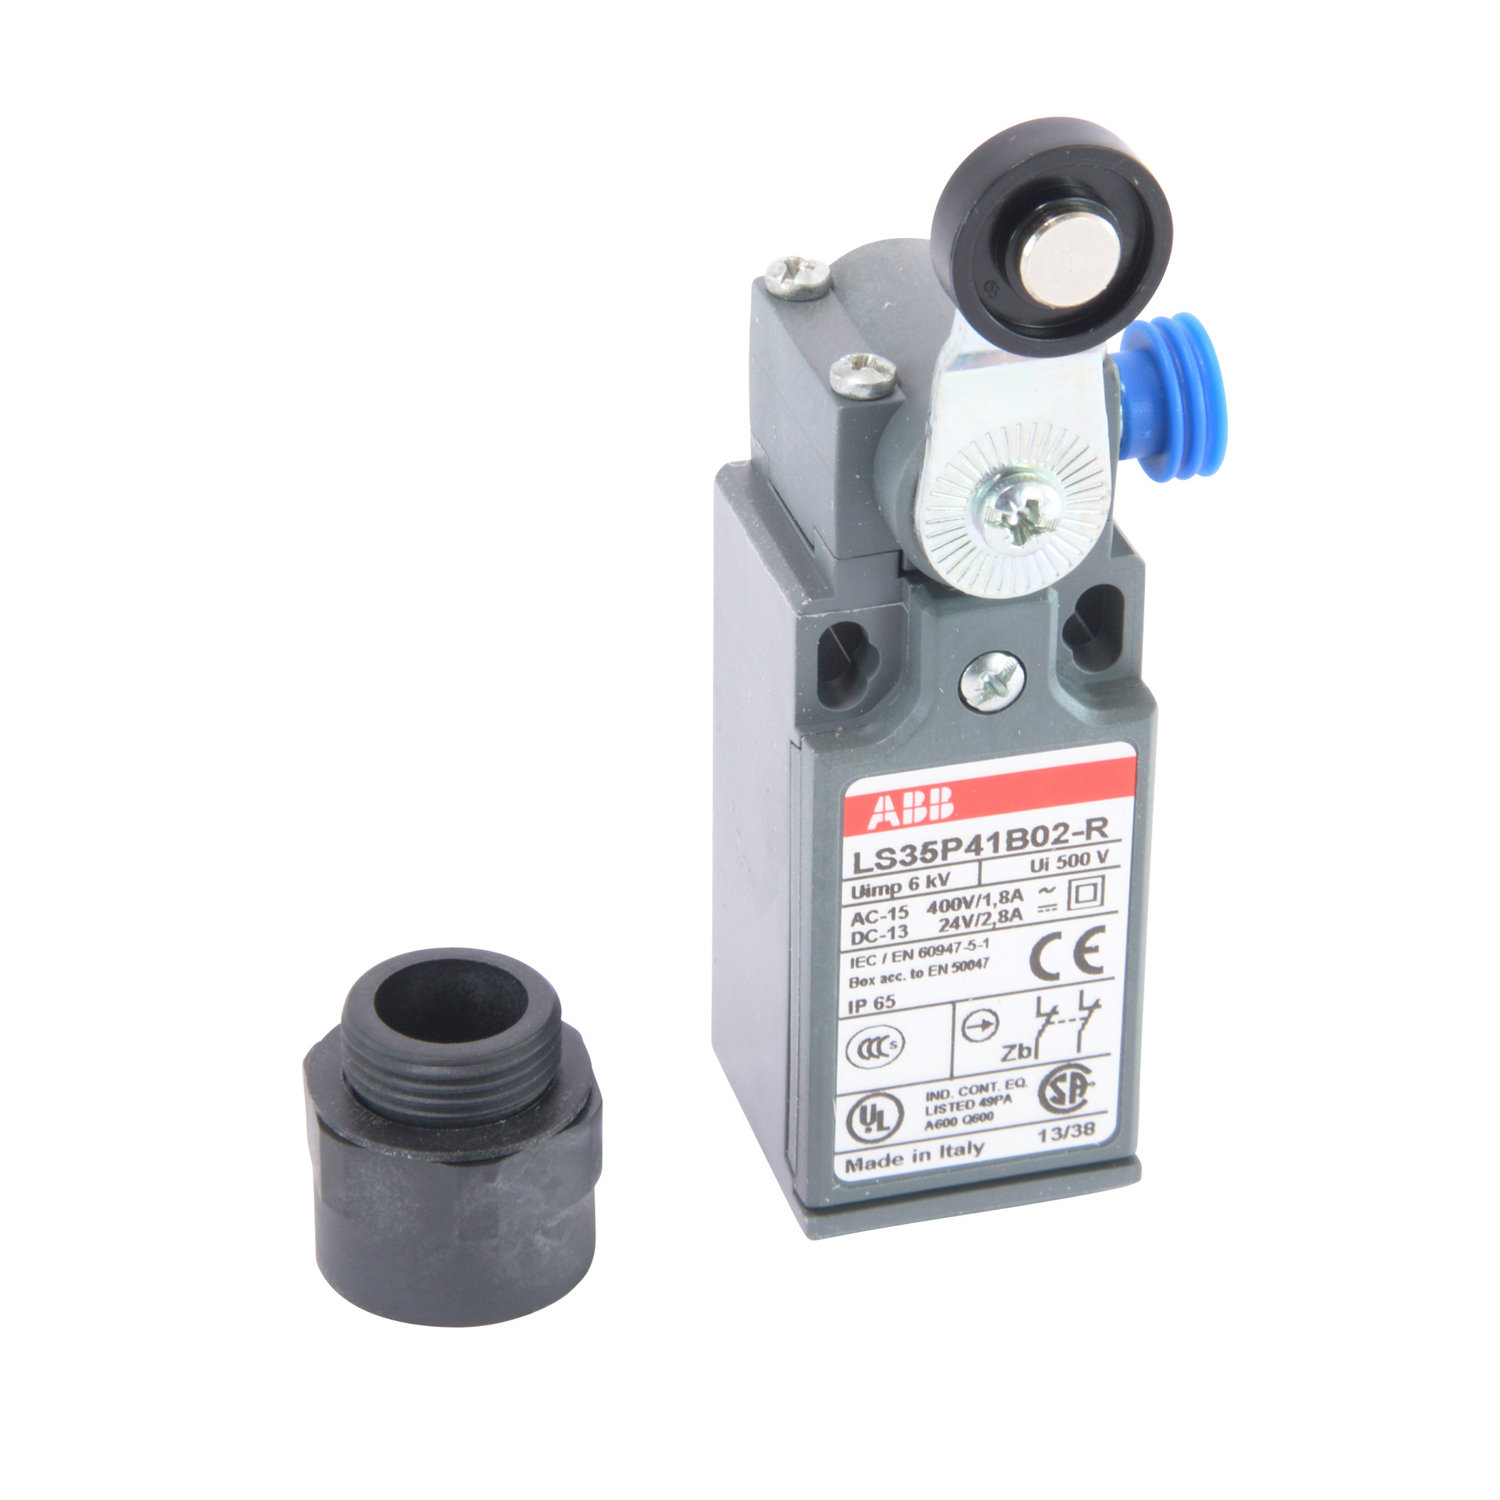 ABB LS35P41B02-R Limit Switch